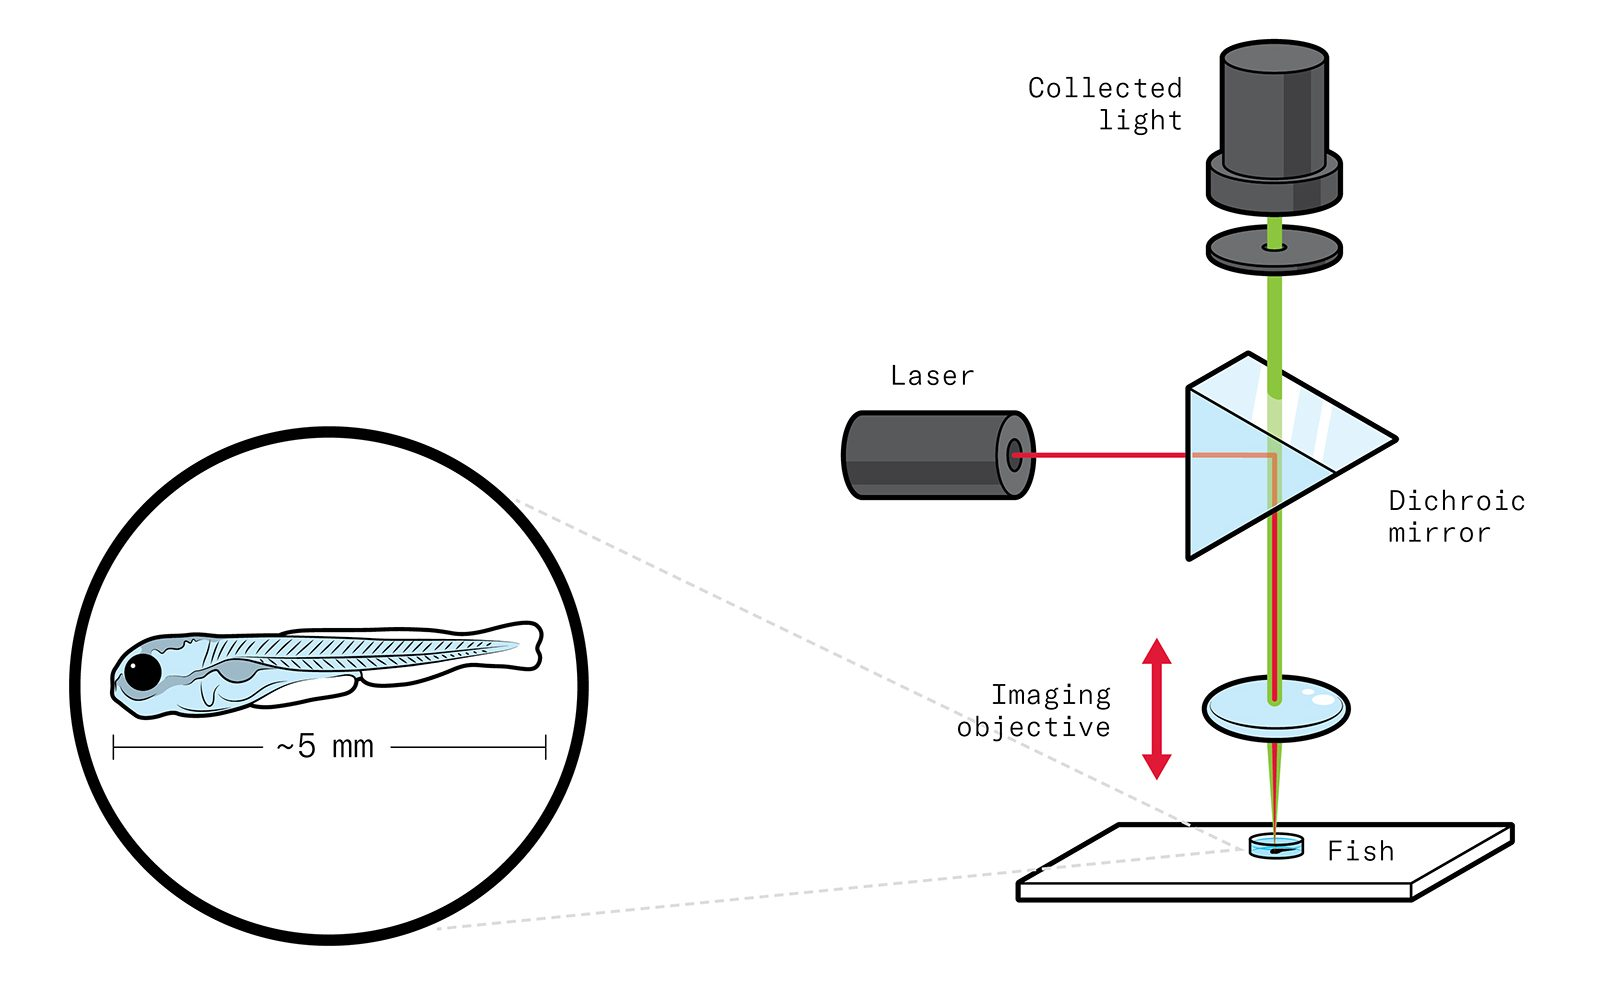 Illustration of the larval fish on a plate, and a light source passing through a lens above the plate and a dichroic mirror above the lens. A laser is hitting the mirror horizontally, with the collected light at the top